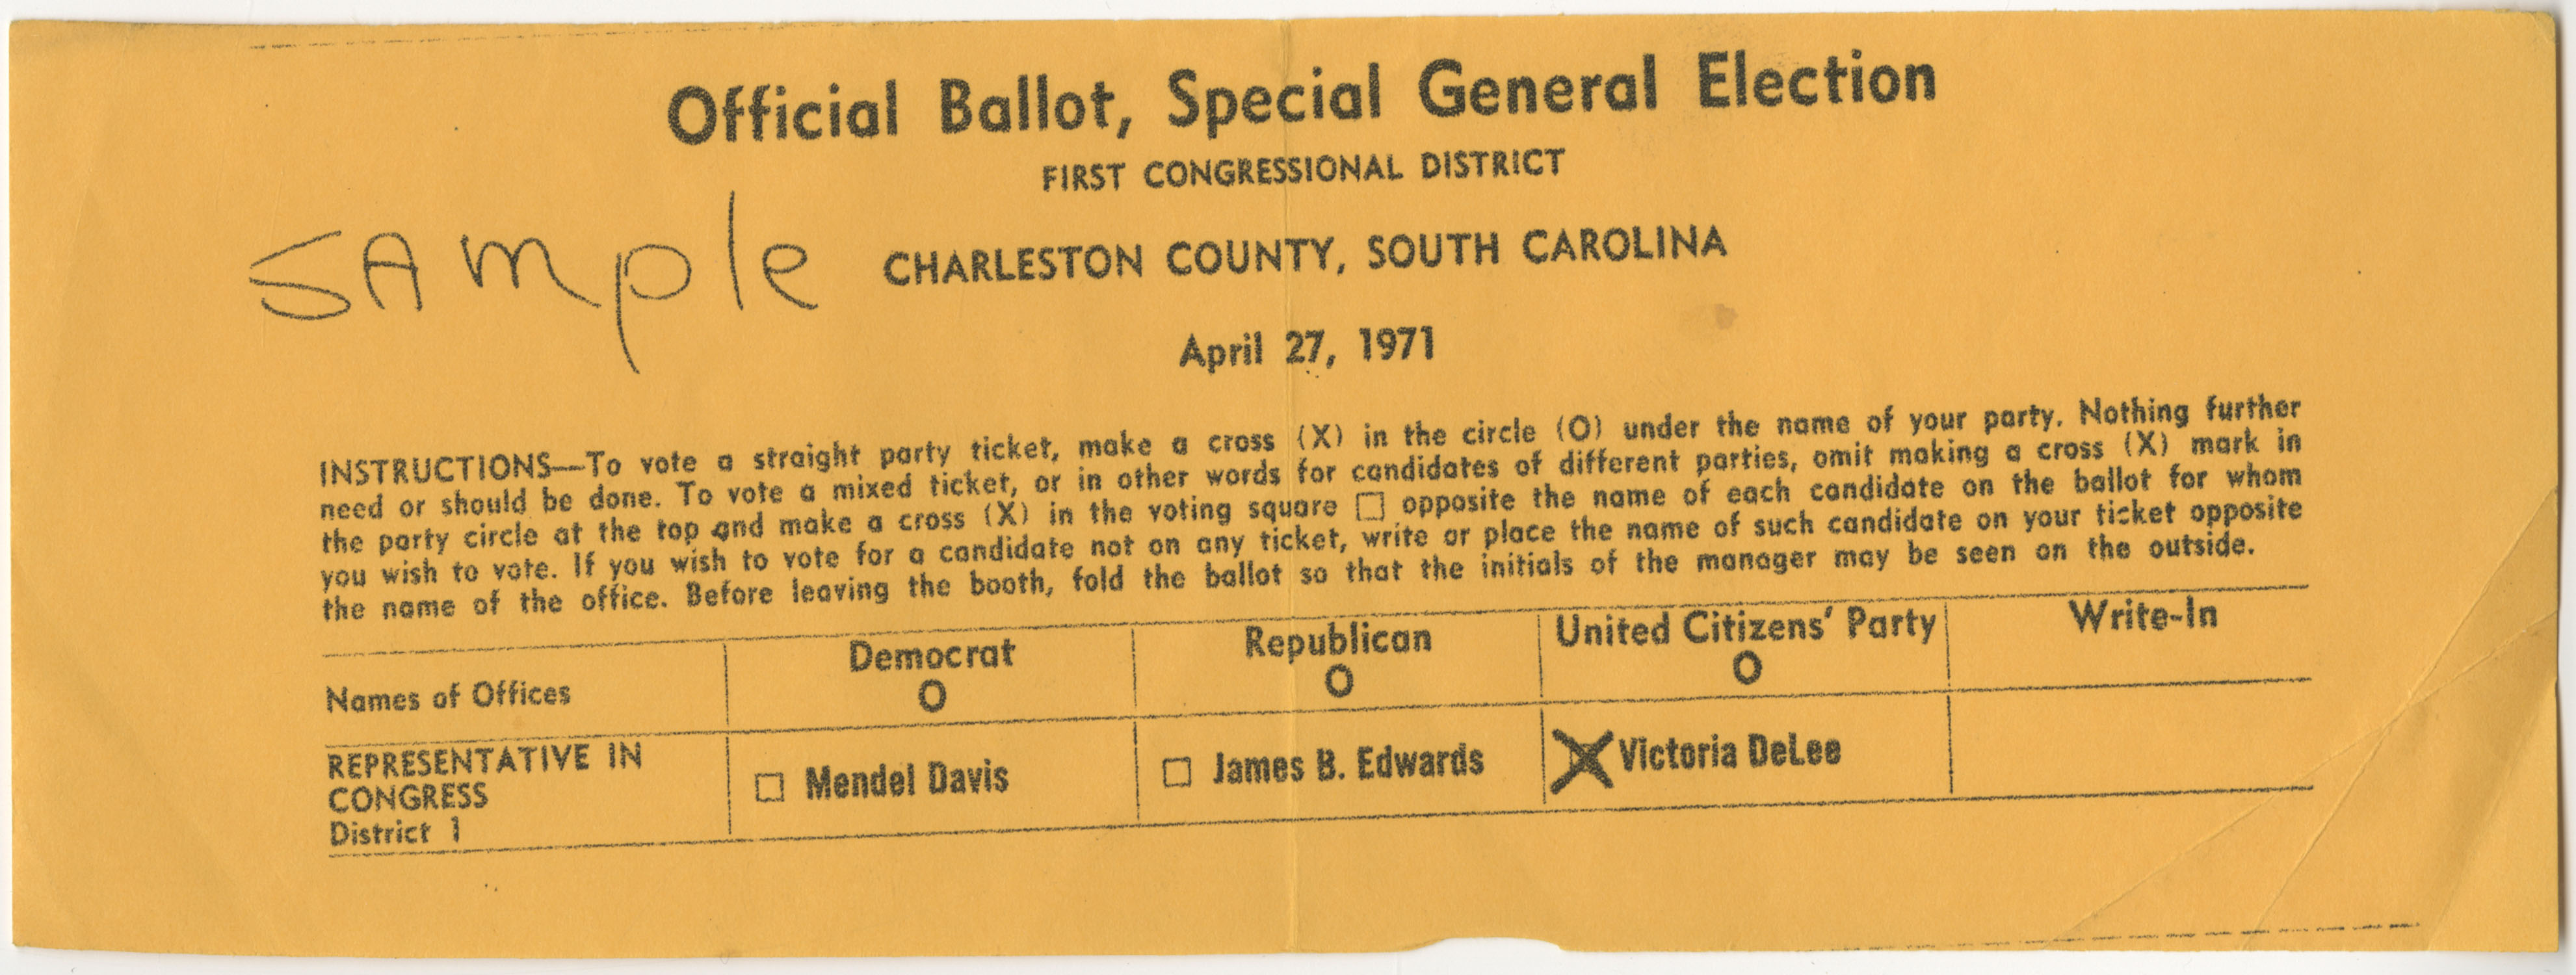 Official Ballot, Special General Election, April 27, 1971